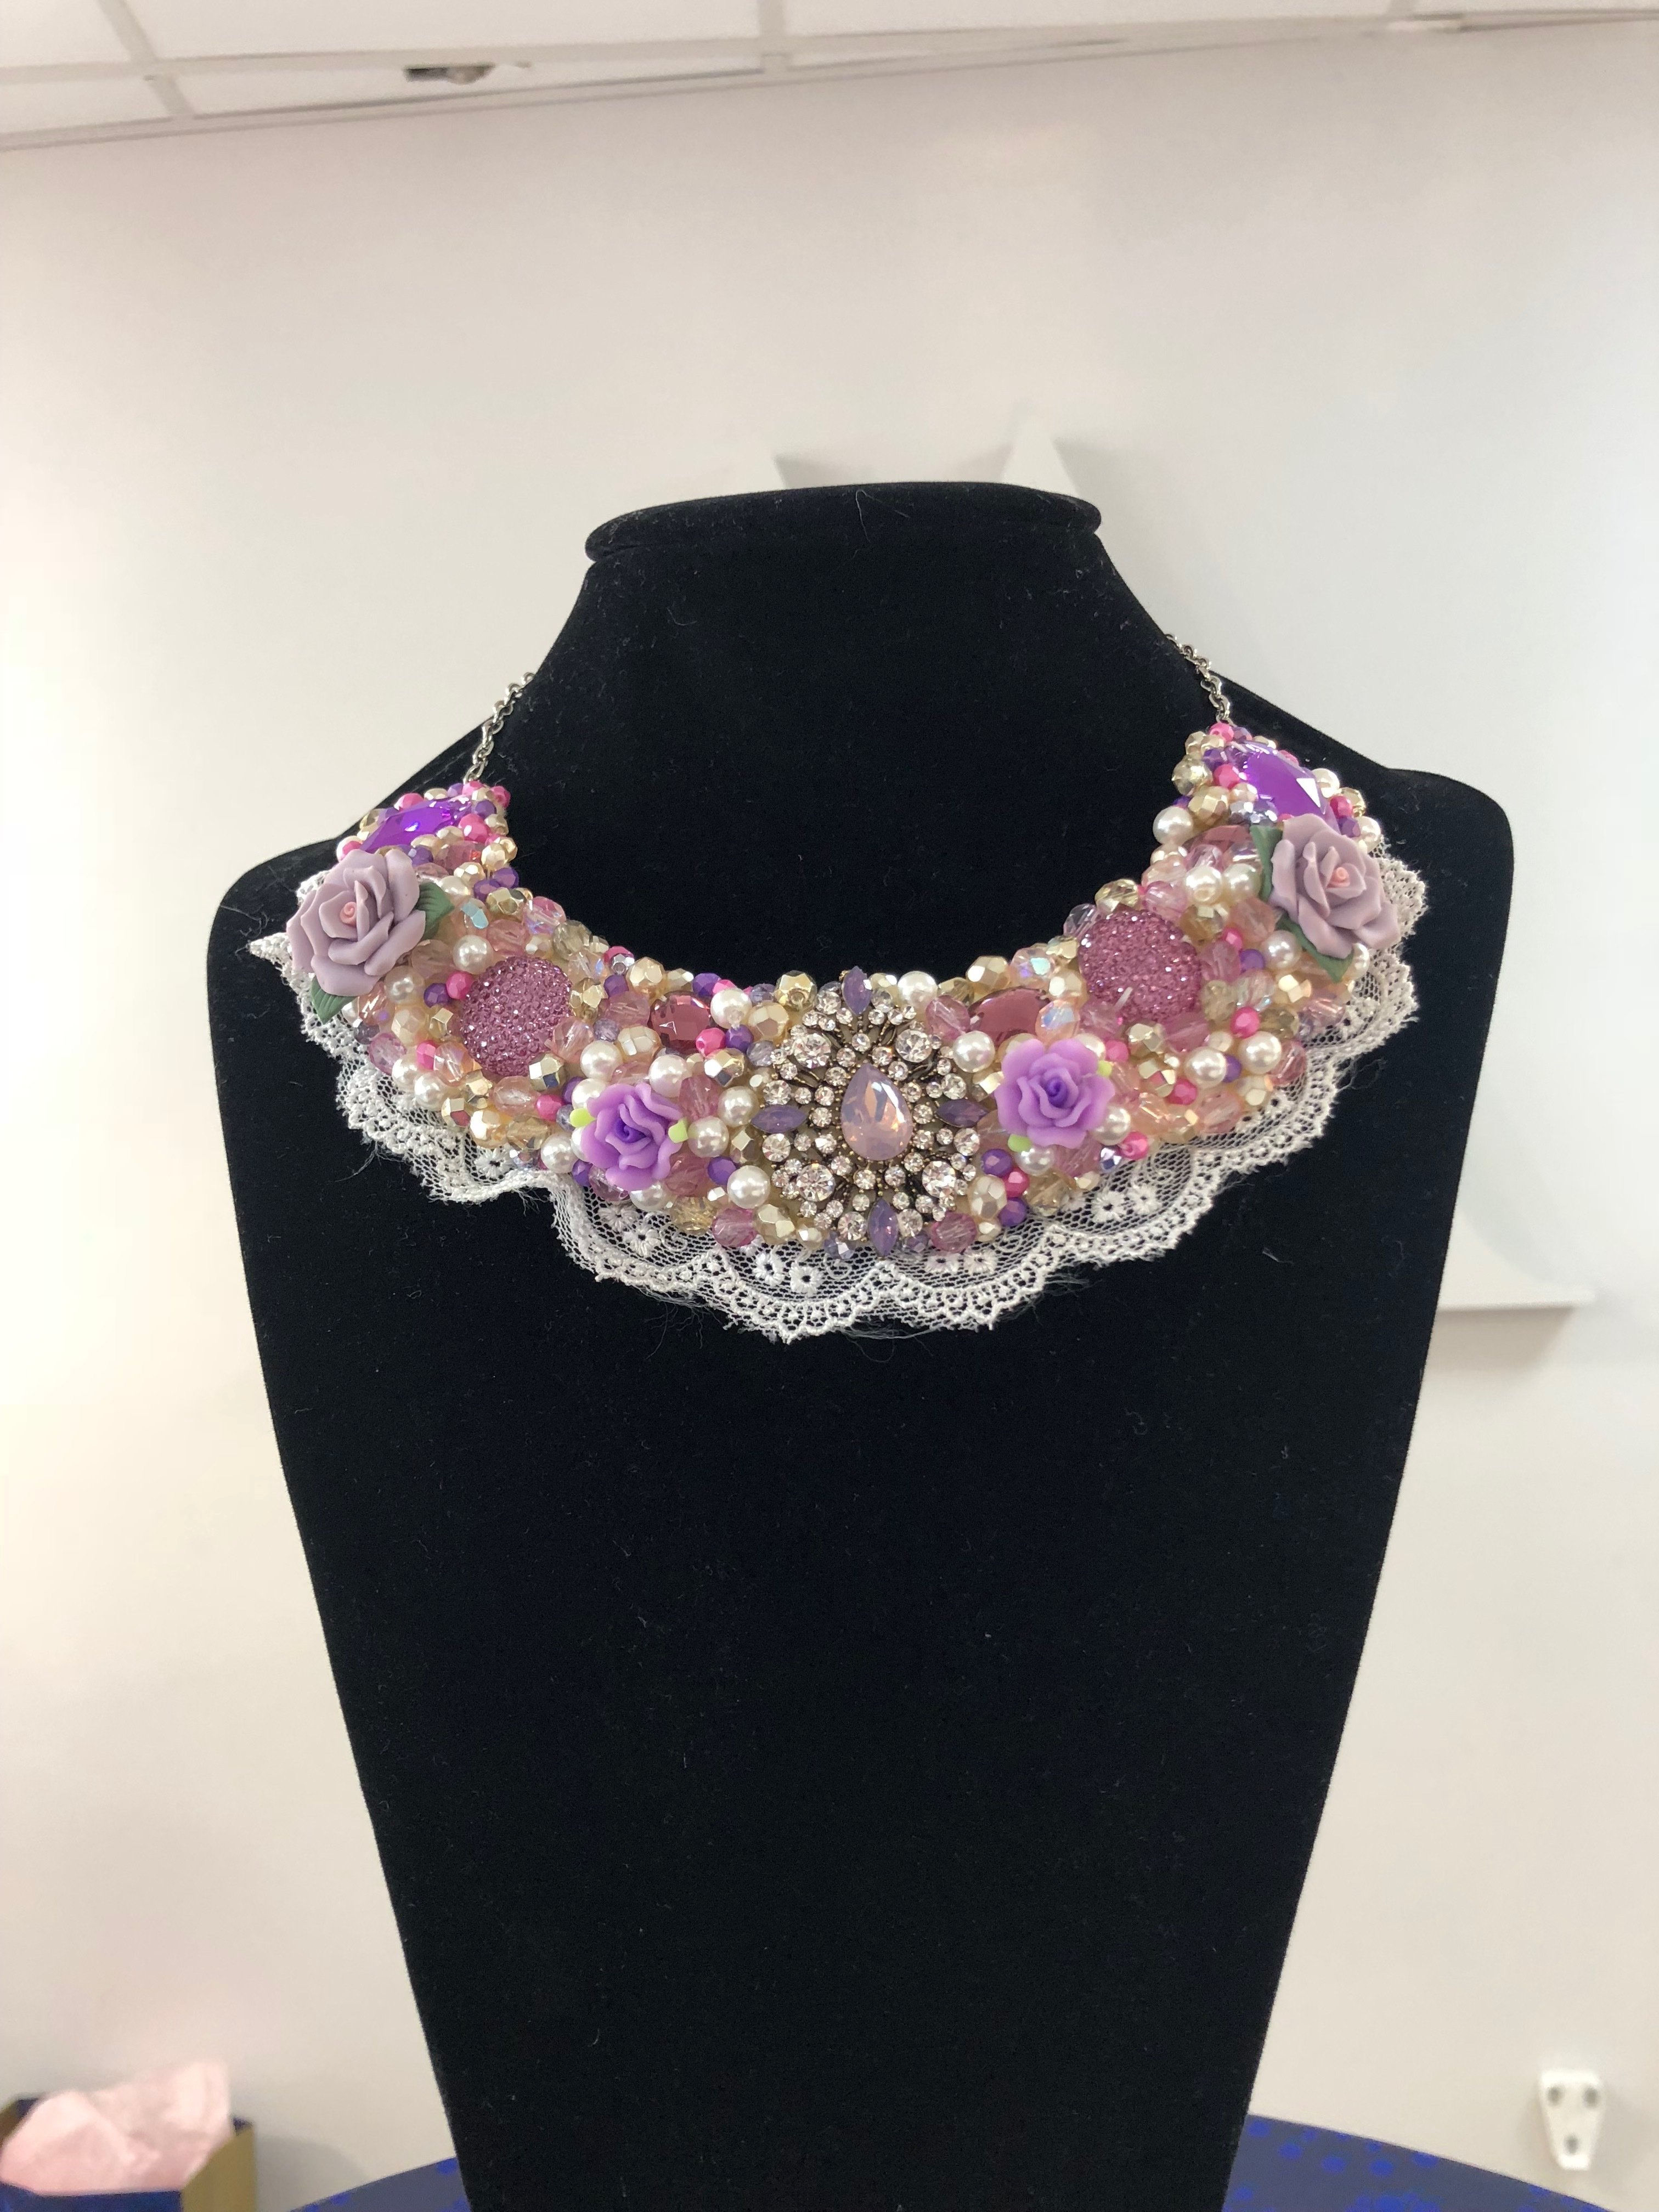 Aisling Maher Lilac, Pink, Pearl and Gold Collar C6PDNKNABT8SM